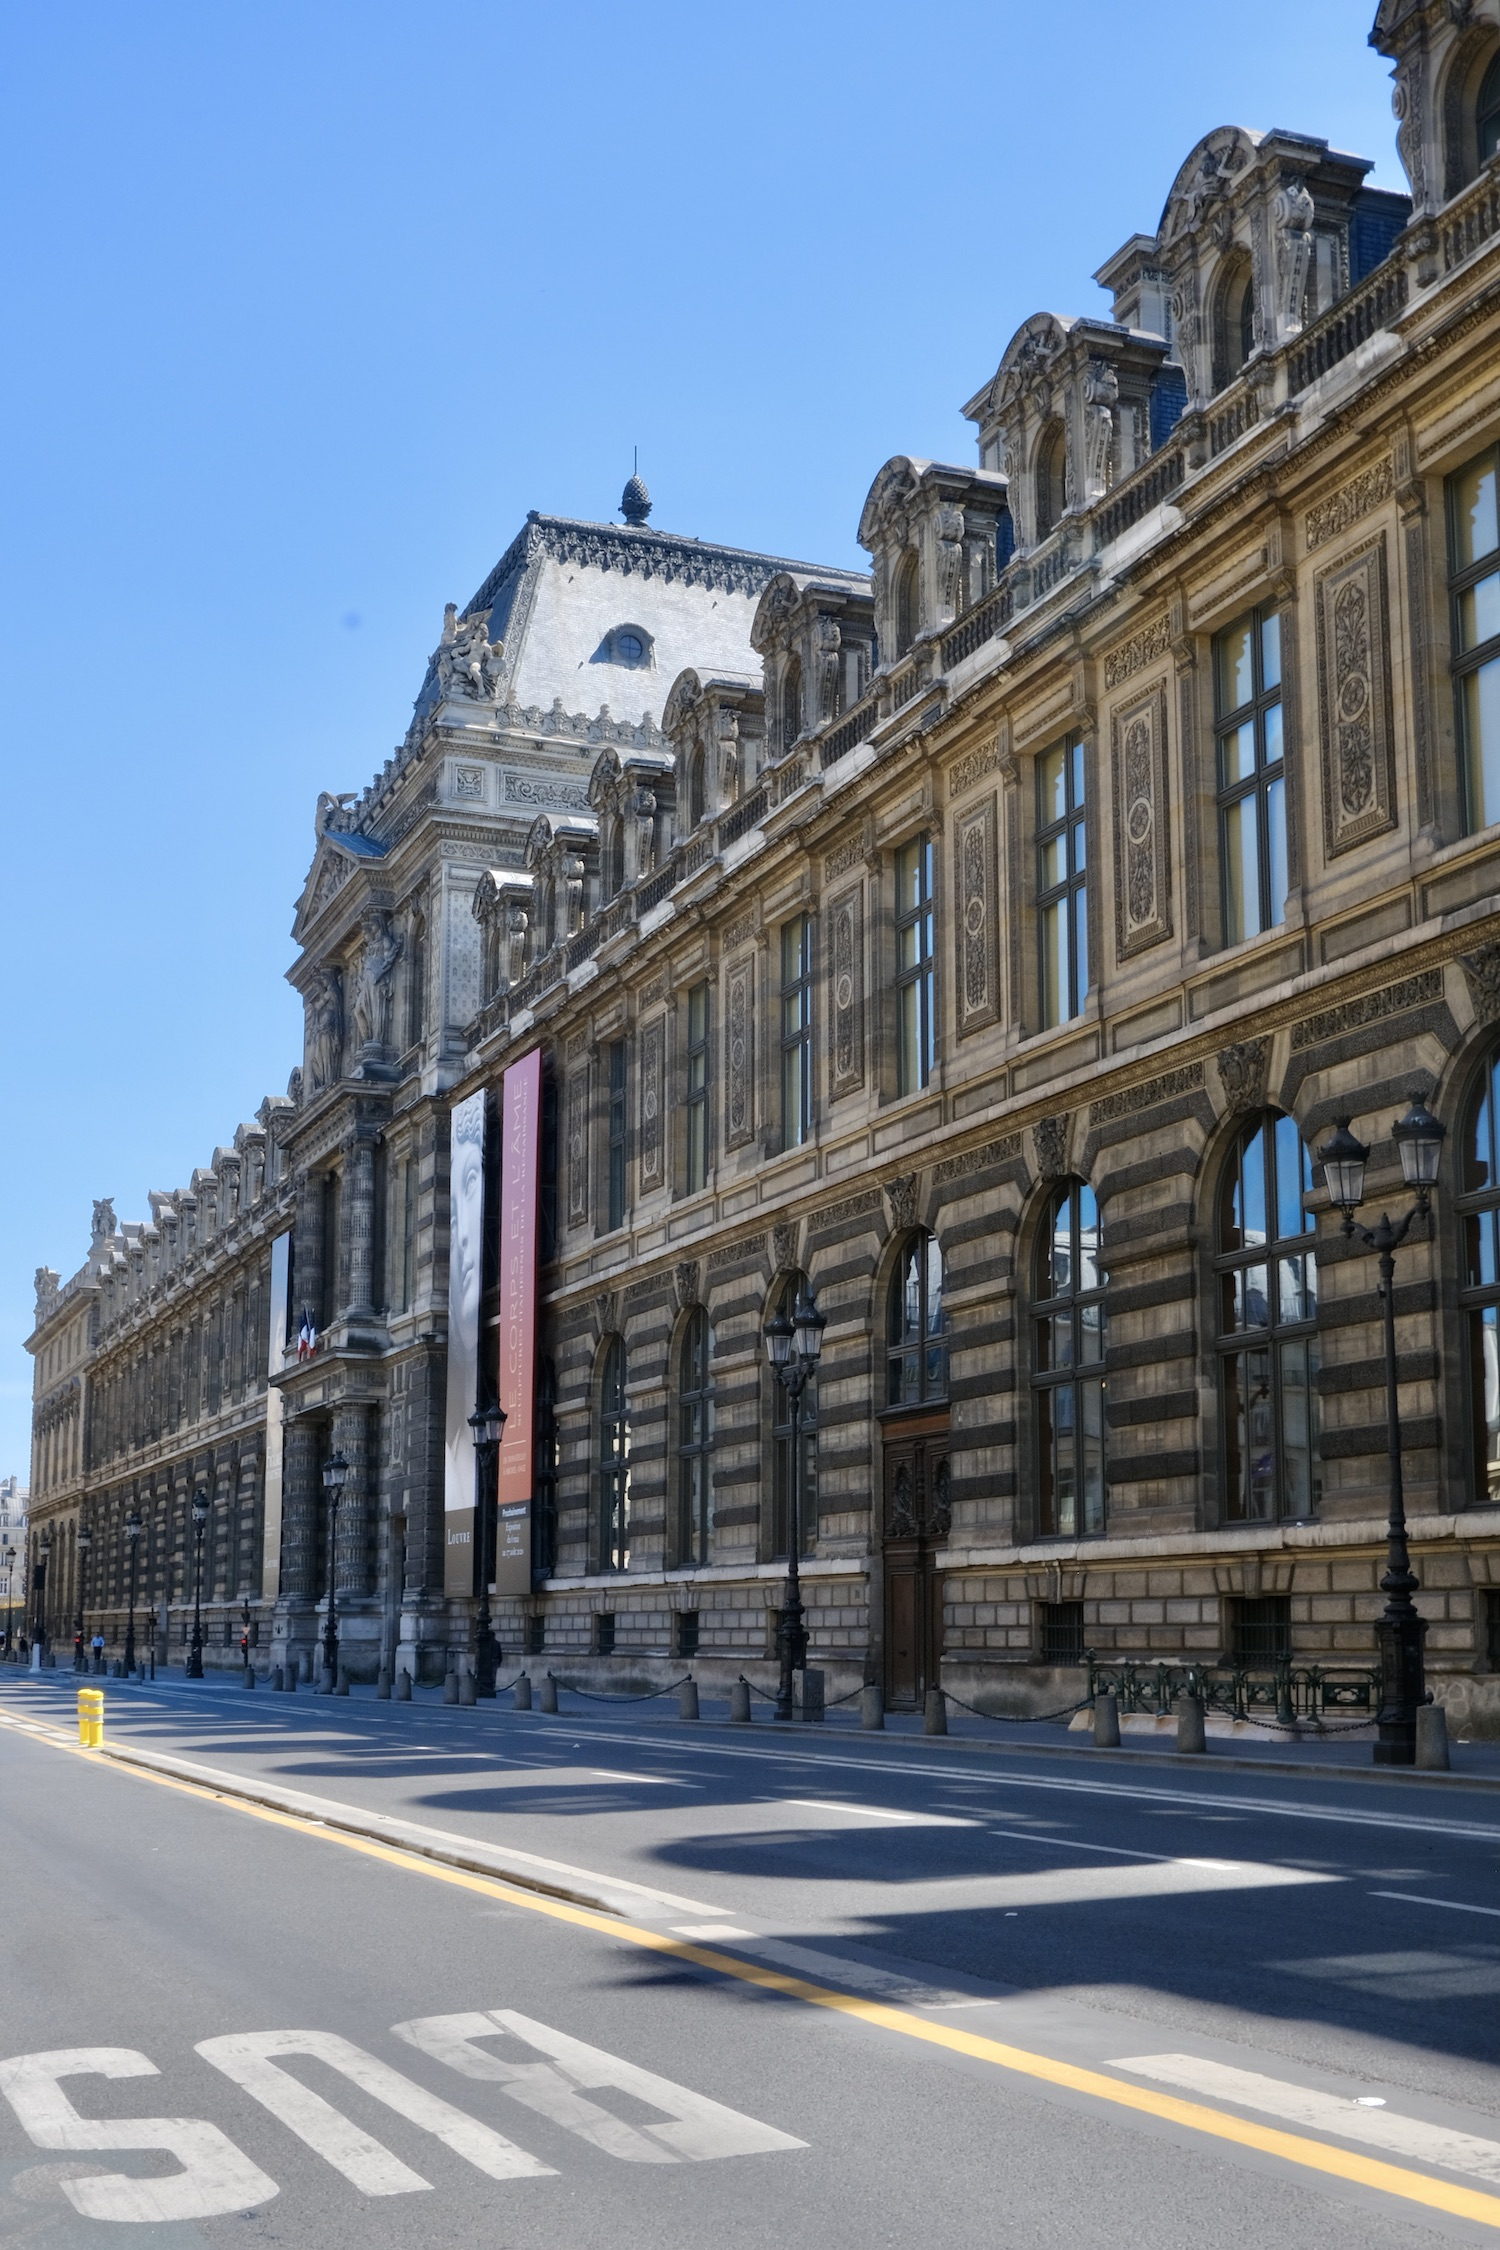 Rue de Rivoli without cars